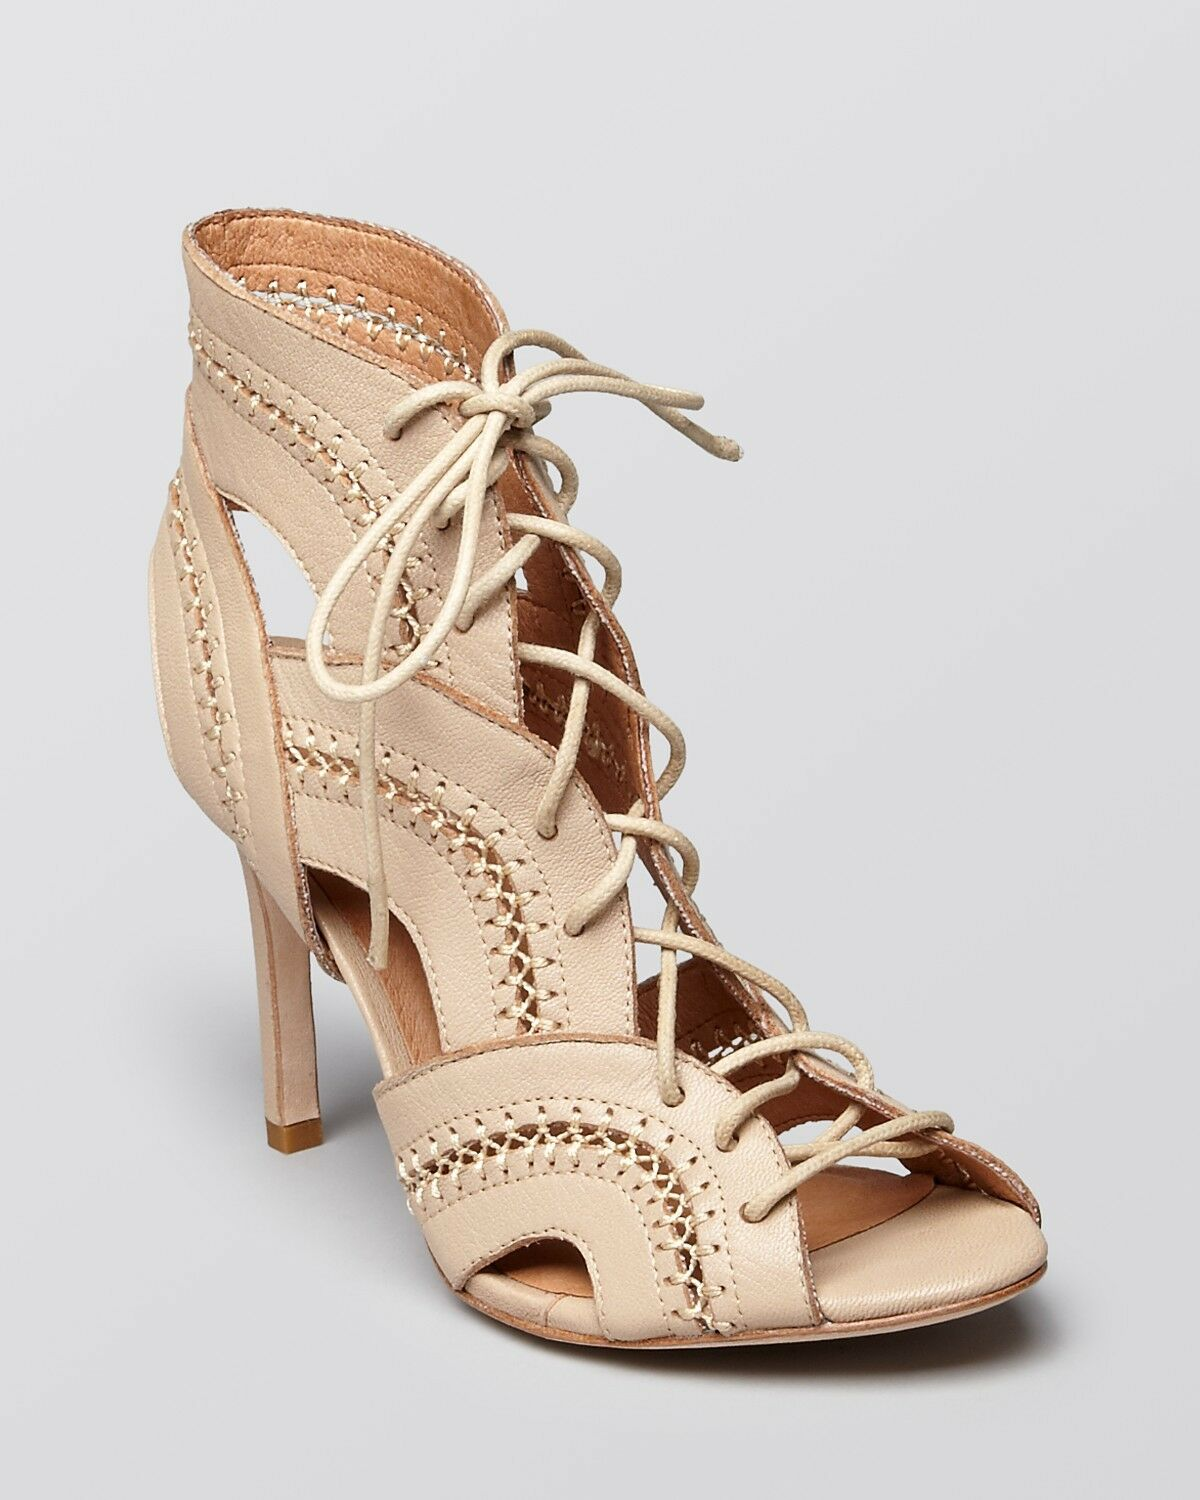 JOIE,  Remy , Dusty Pink Sand, Lace Up Heels, NWB, Size 39.5,  325, CLEARANCE